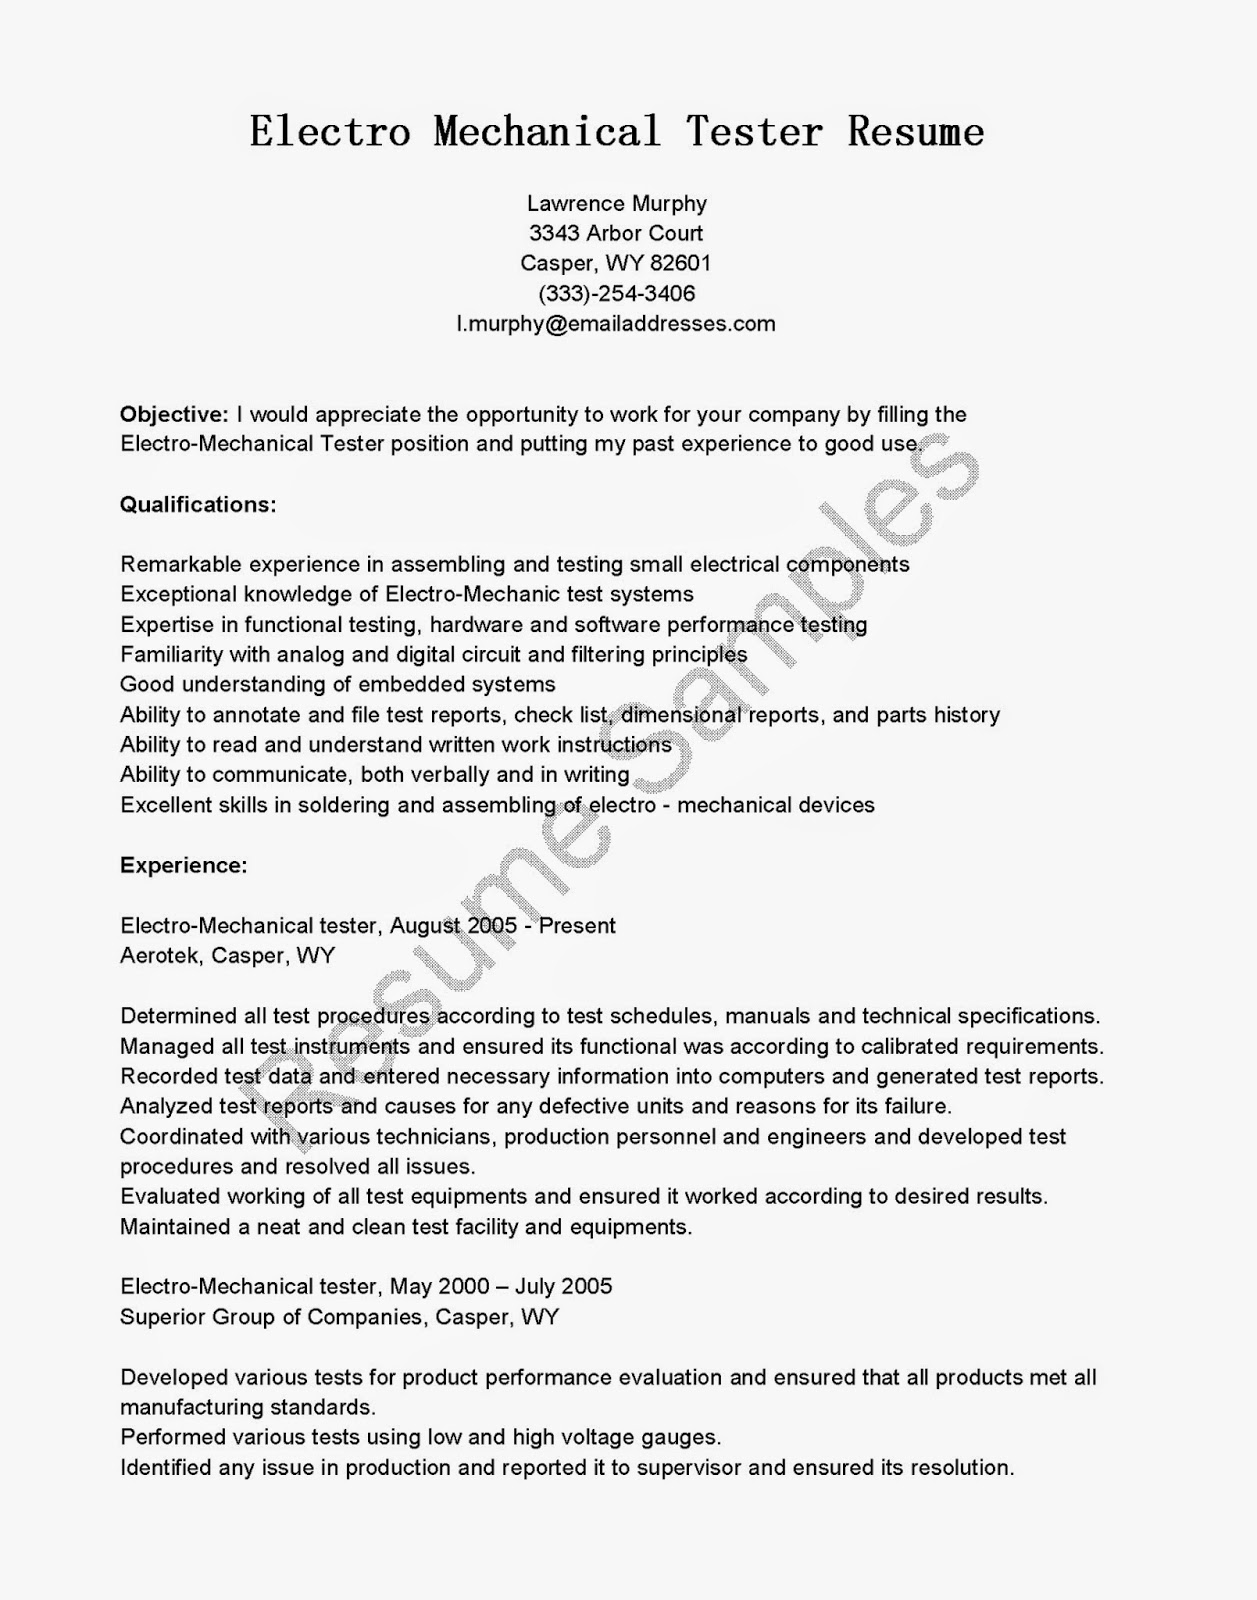 electro mechanical resume sles - 28 images - cover letter ...